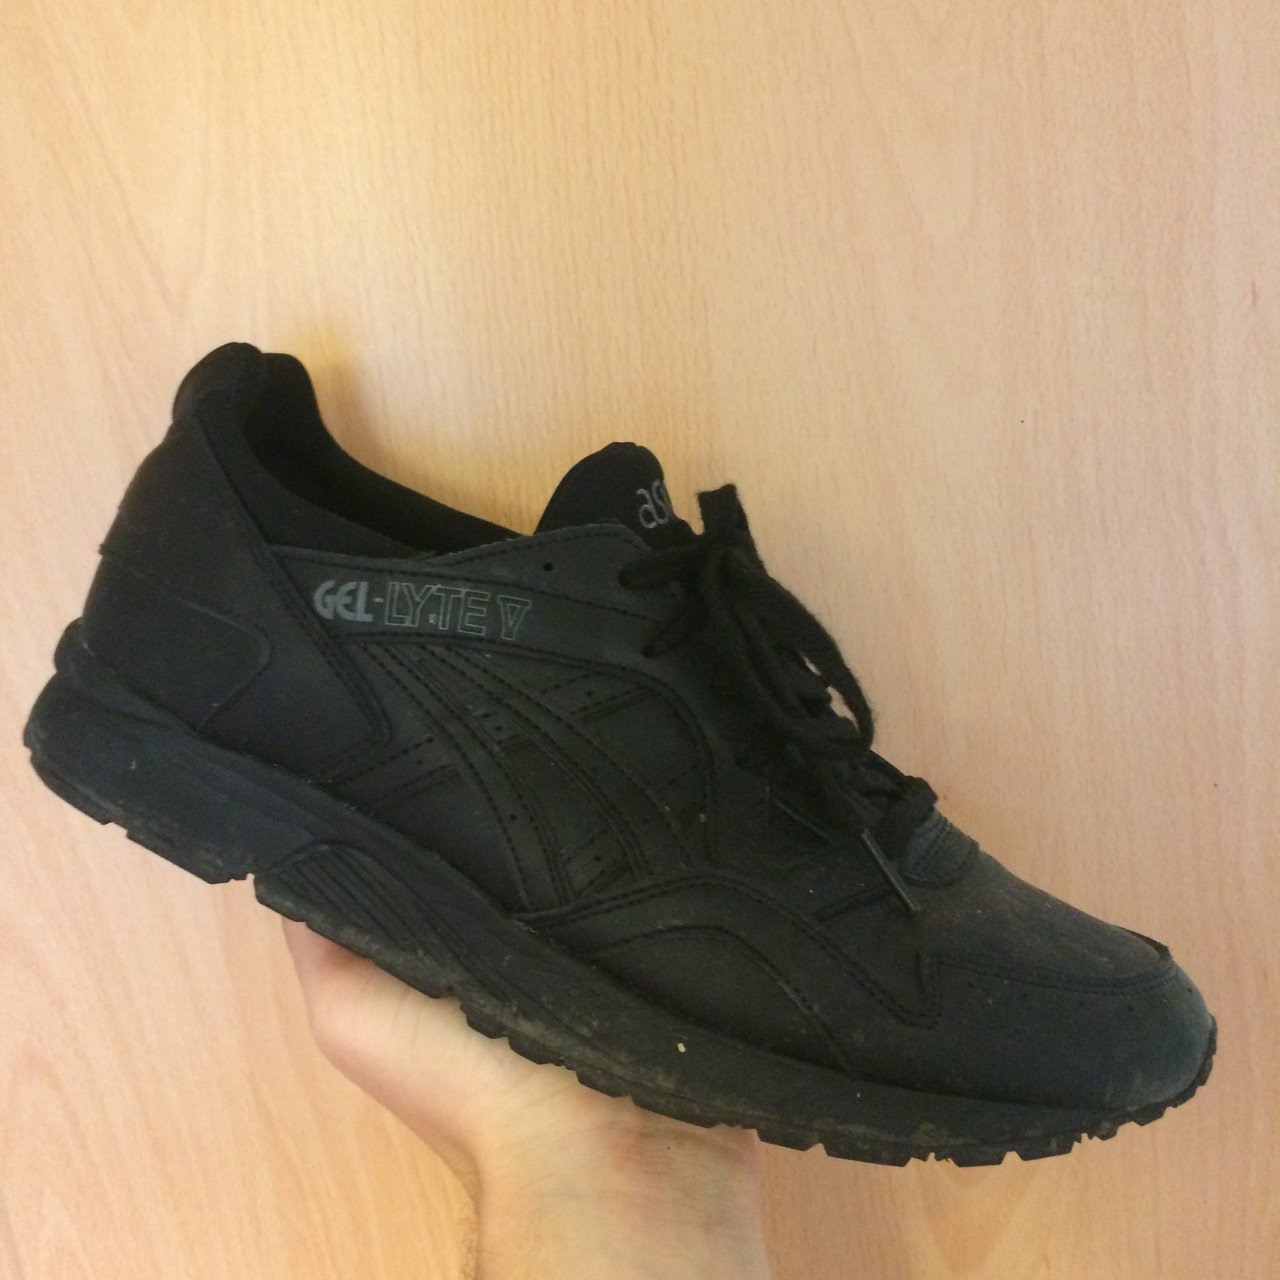 ⚡ ⚡ Price Drop ⚠ Asics Gel-Lyte V all black leather to a - Depop 67c3e1f441c4f